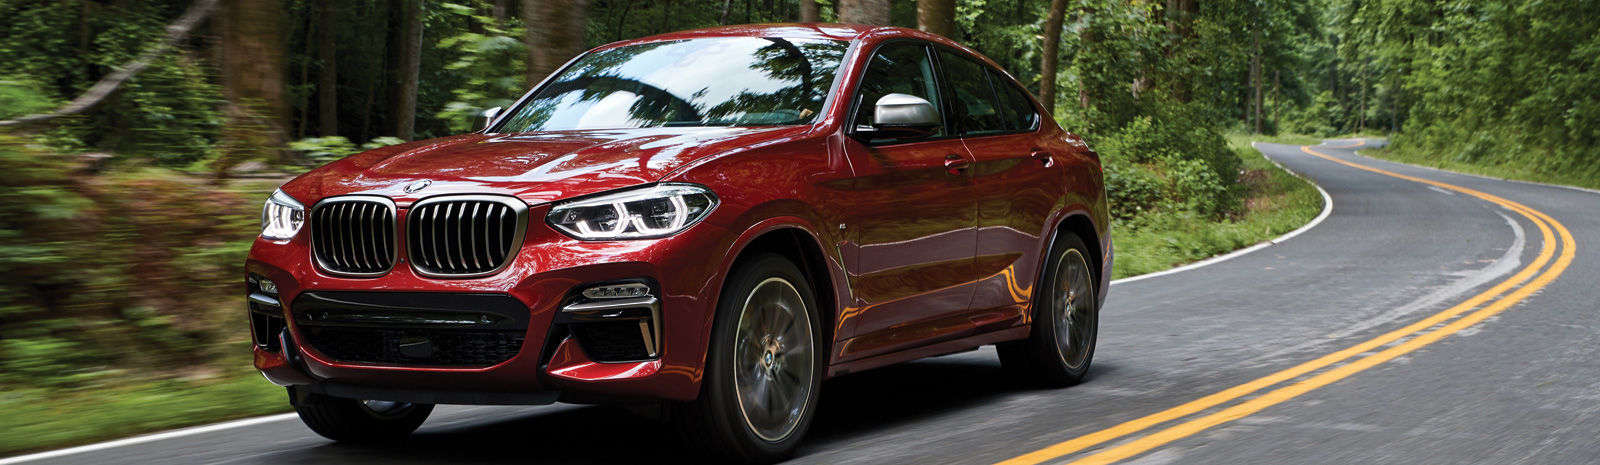 2018 BMW X4 model in Ottawa